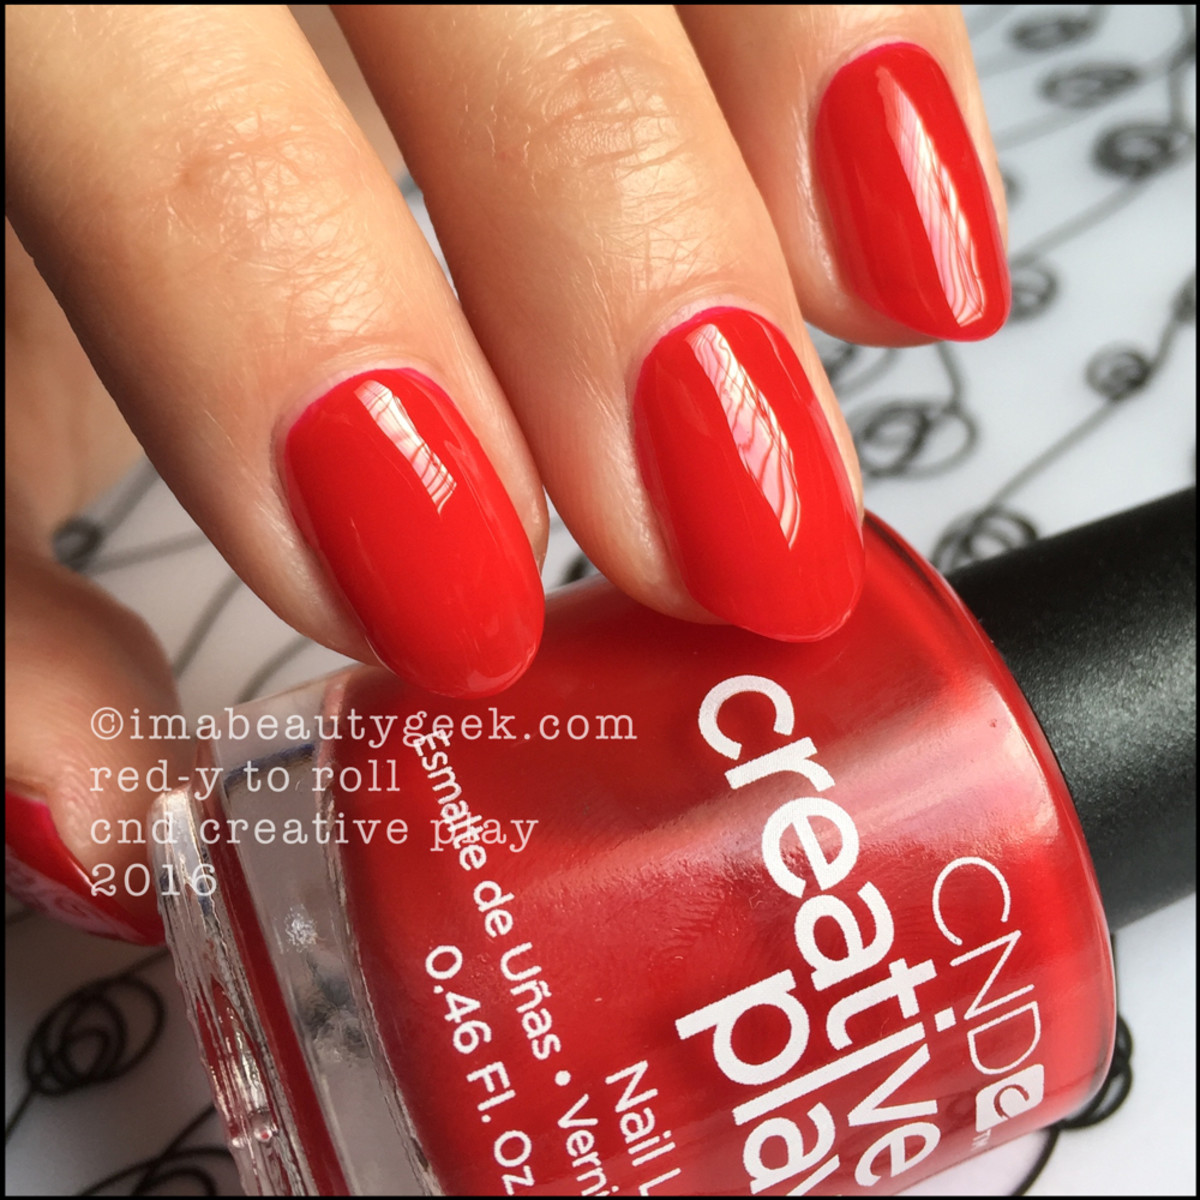 CND Creative Play Redy To Roll_CND Creative Play Nail Polish Swatches